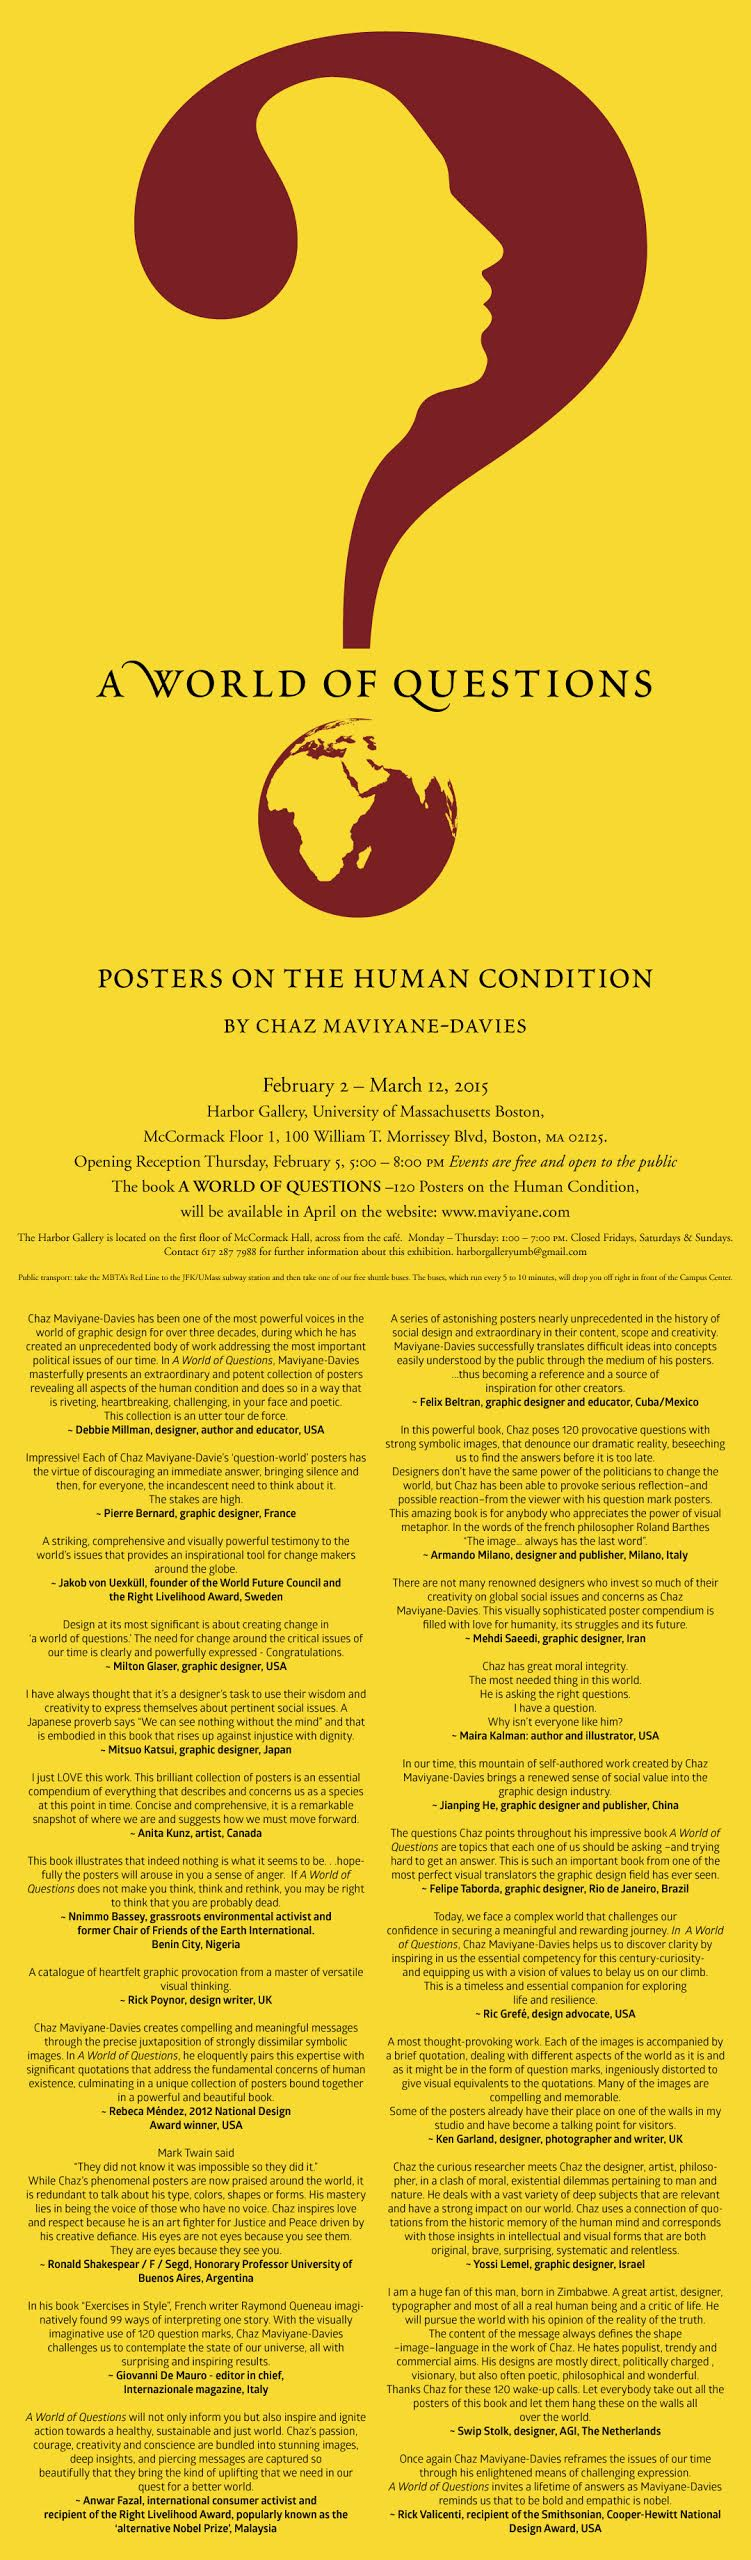 Chaz Maviyane-Davies Exhibition: A World of Questions -posters on the human condition